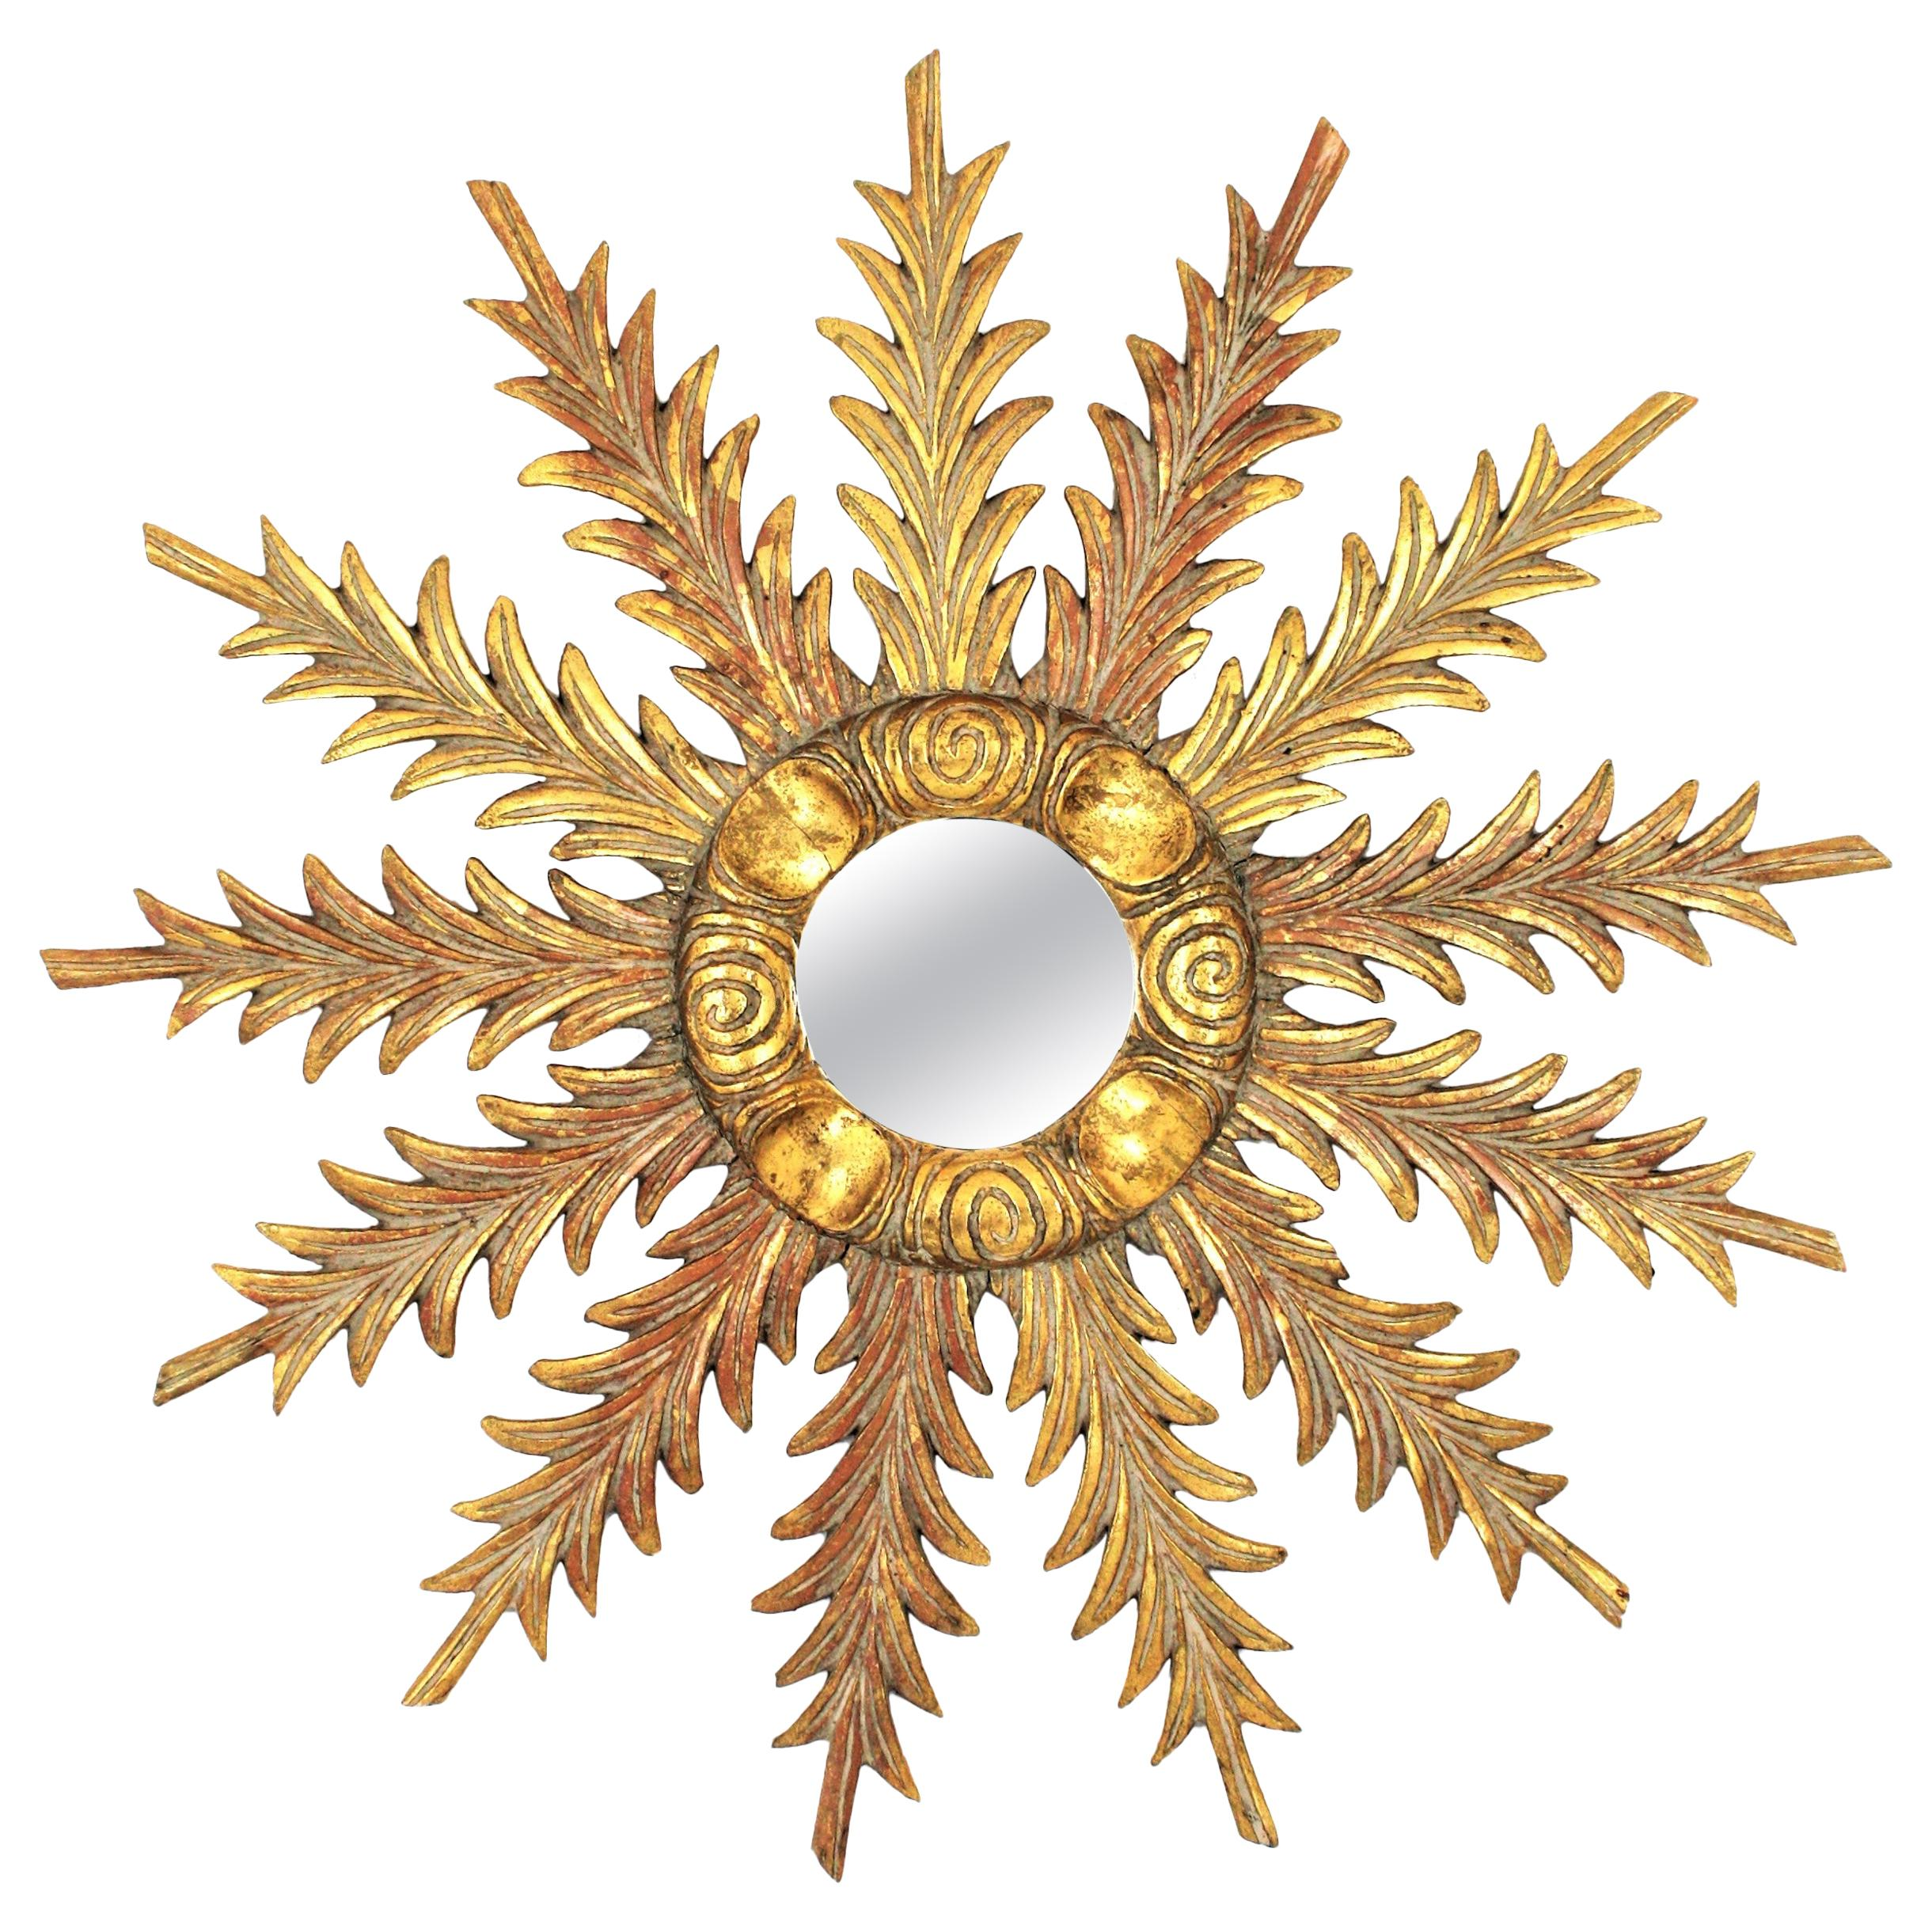 Starburst Sunburst Carved Giltwood Mirror, Spain, 1930s